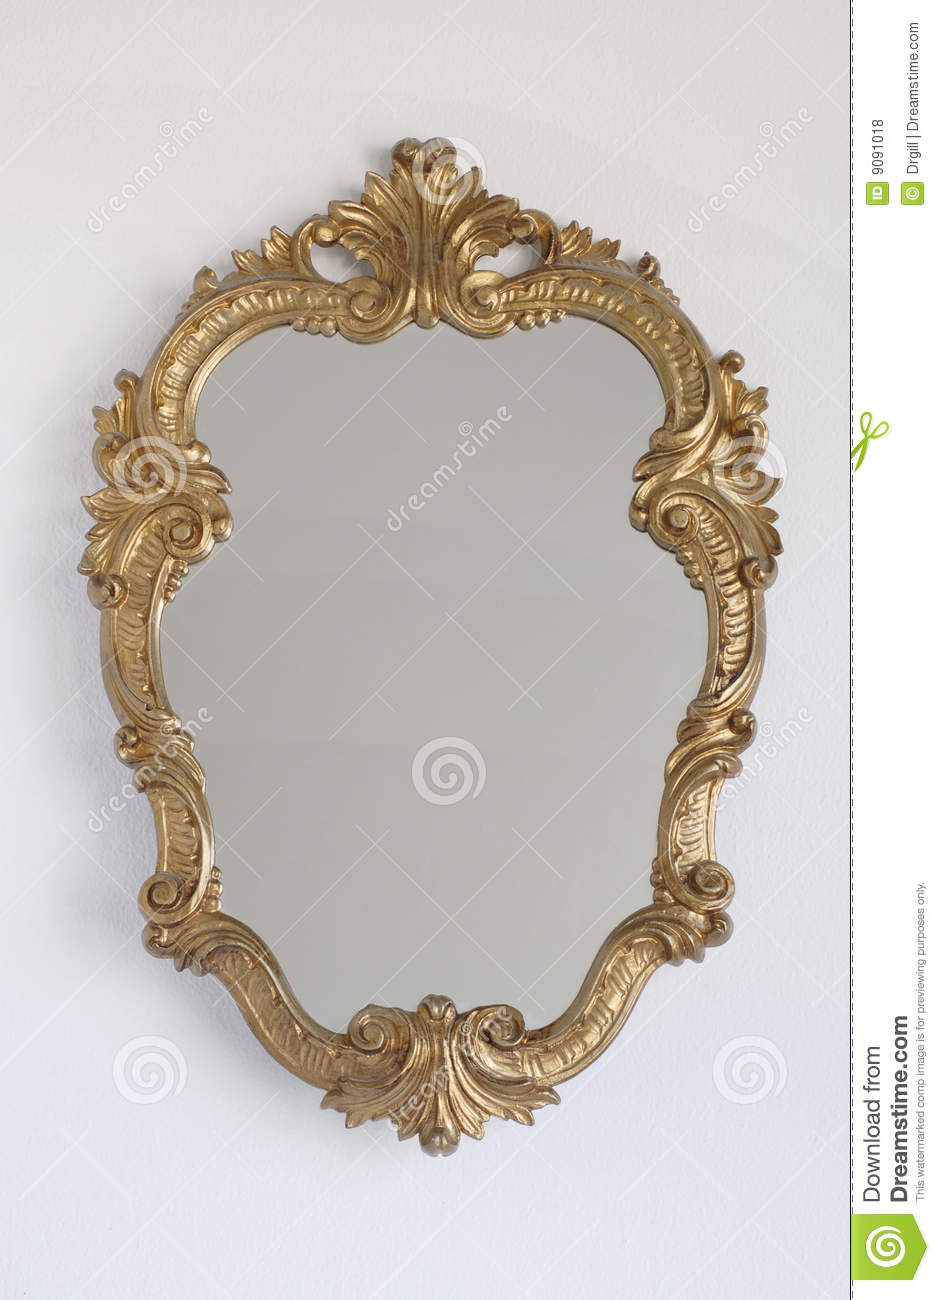 Princess mirror on a wall royalty free stock photos for Miroir on the wall